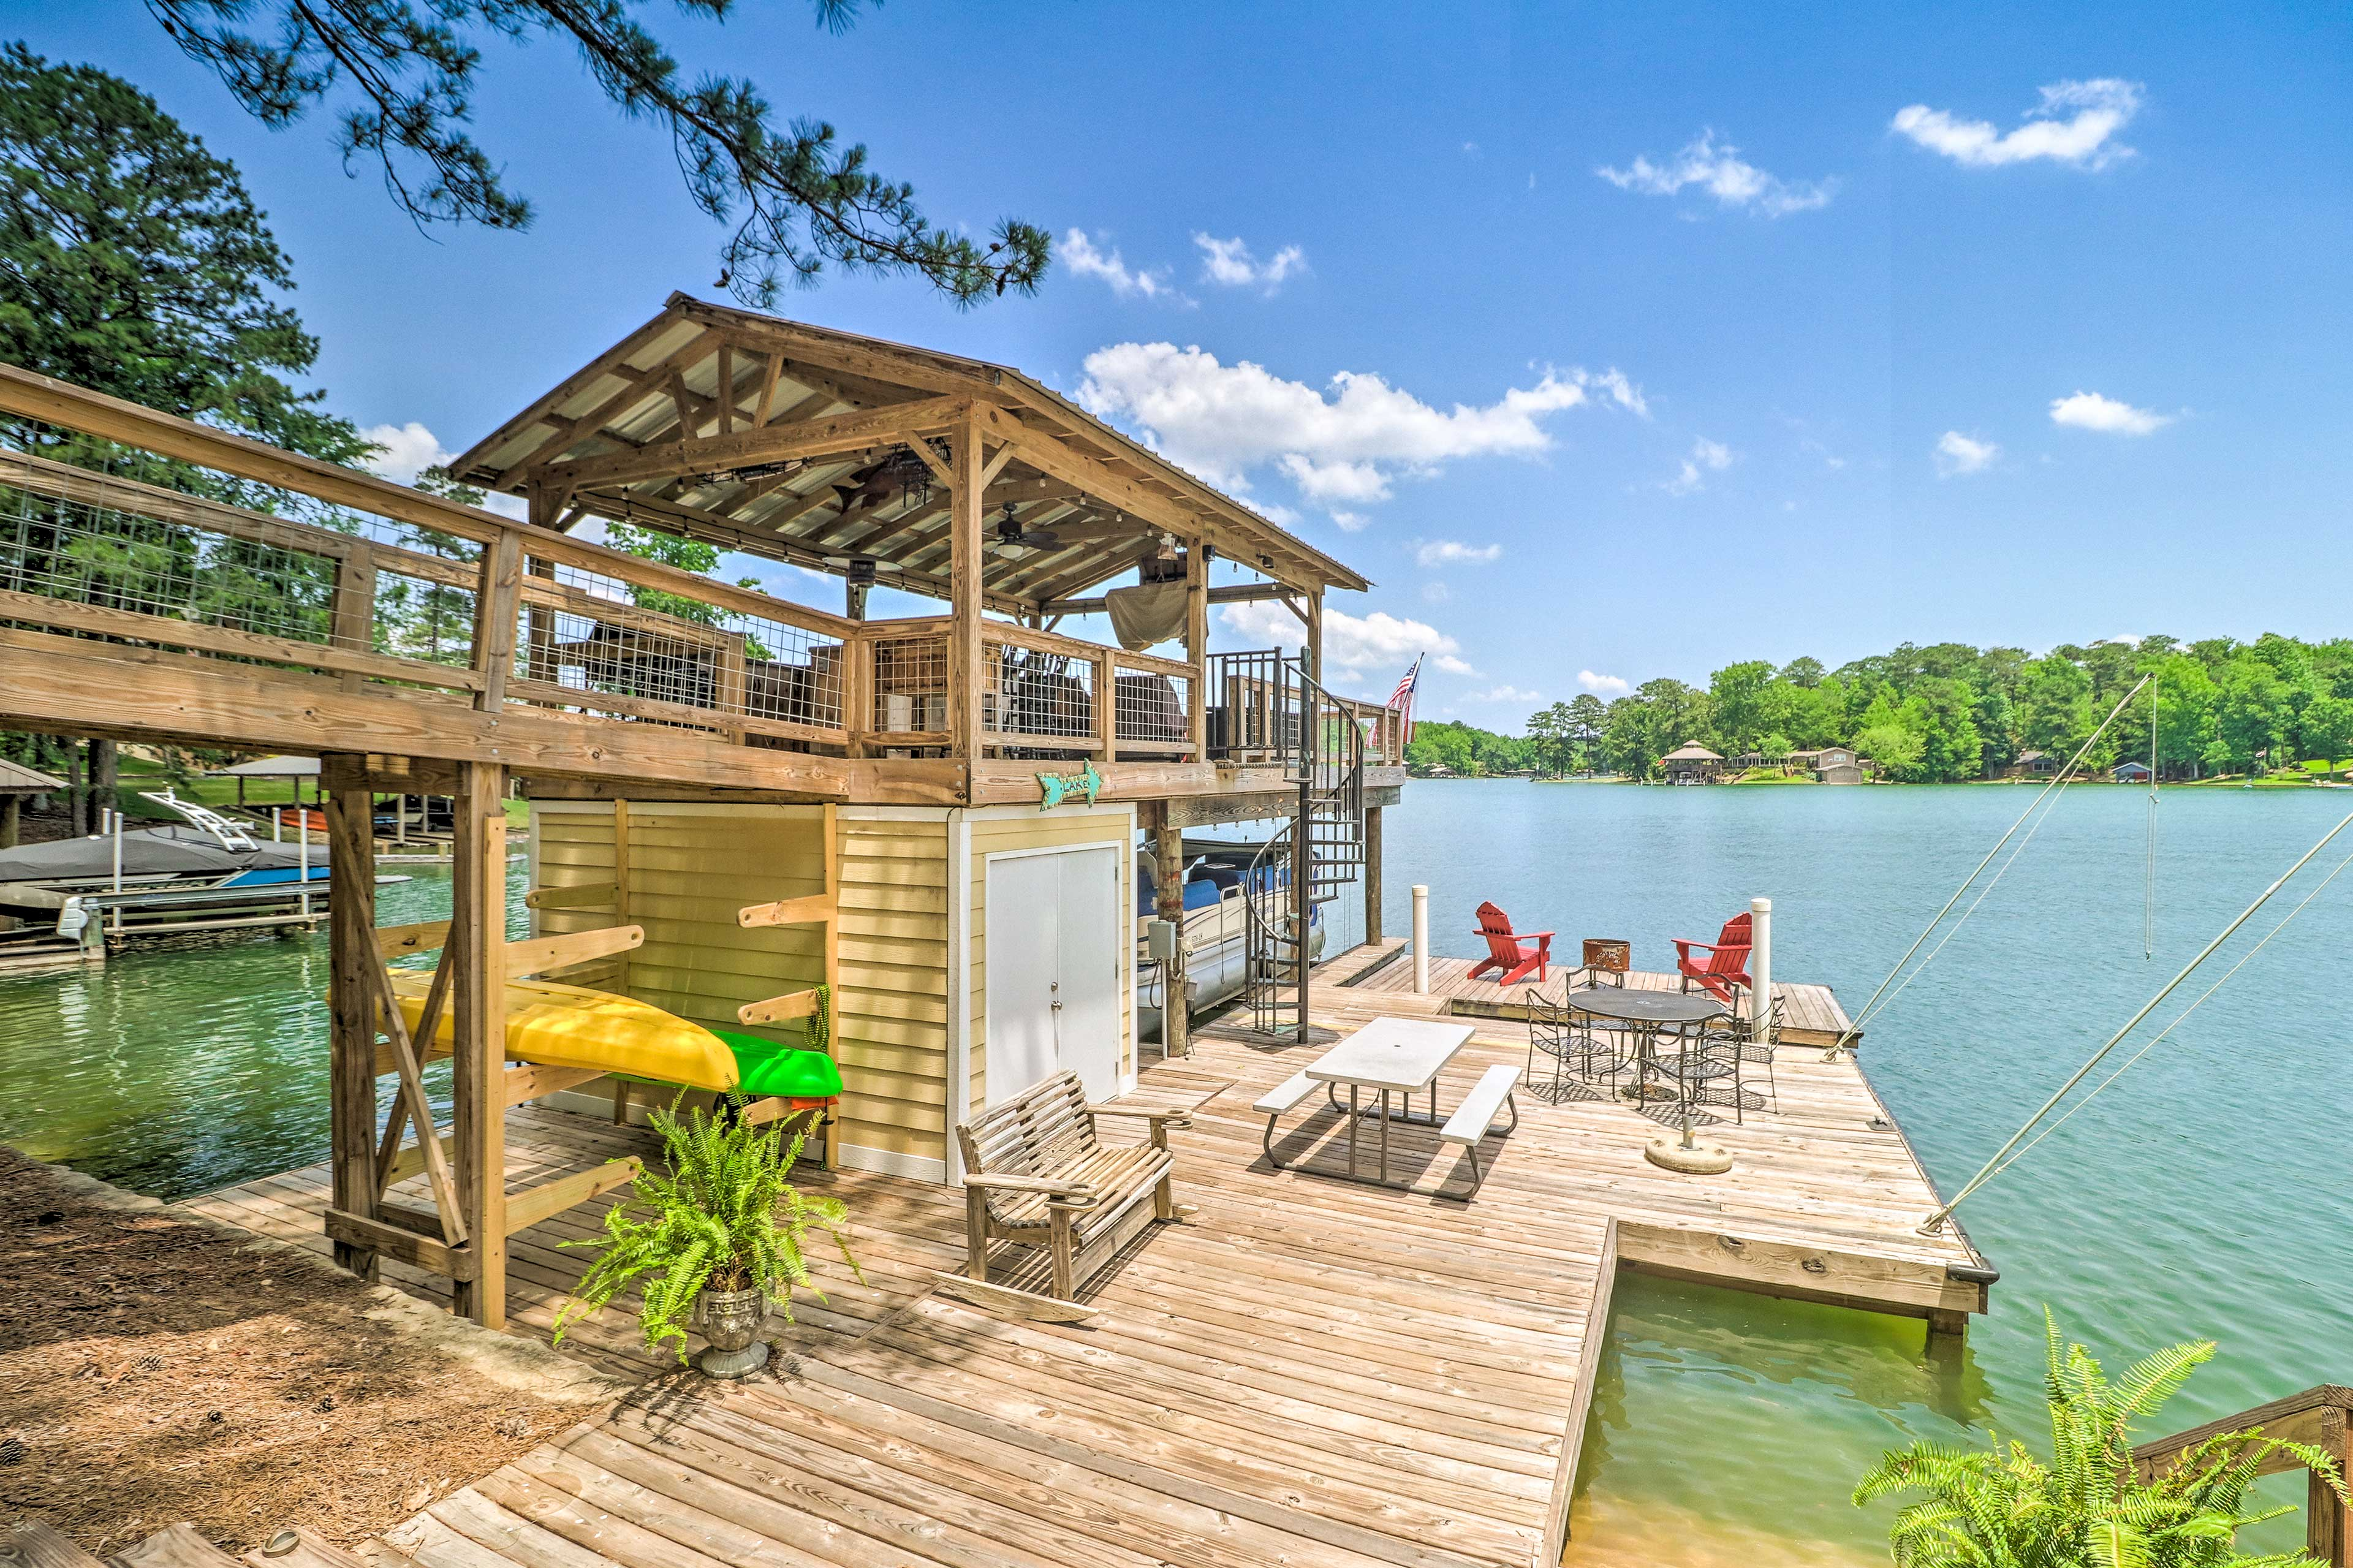 Lakefront paradise awaits at this 3-bedroom, 2-bath Eclectic vacation rental!